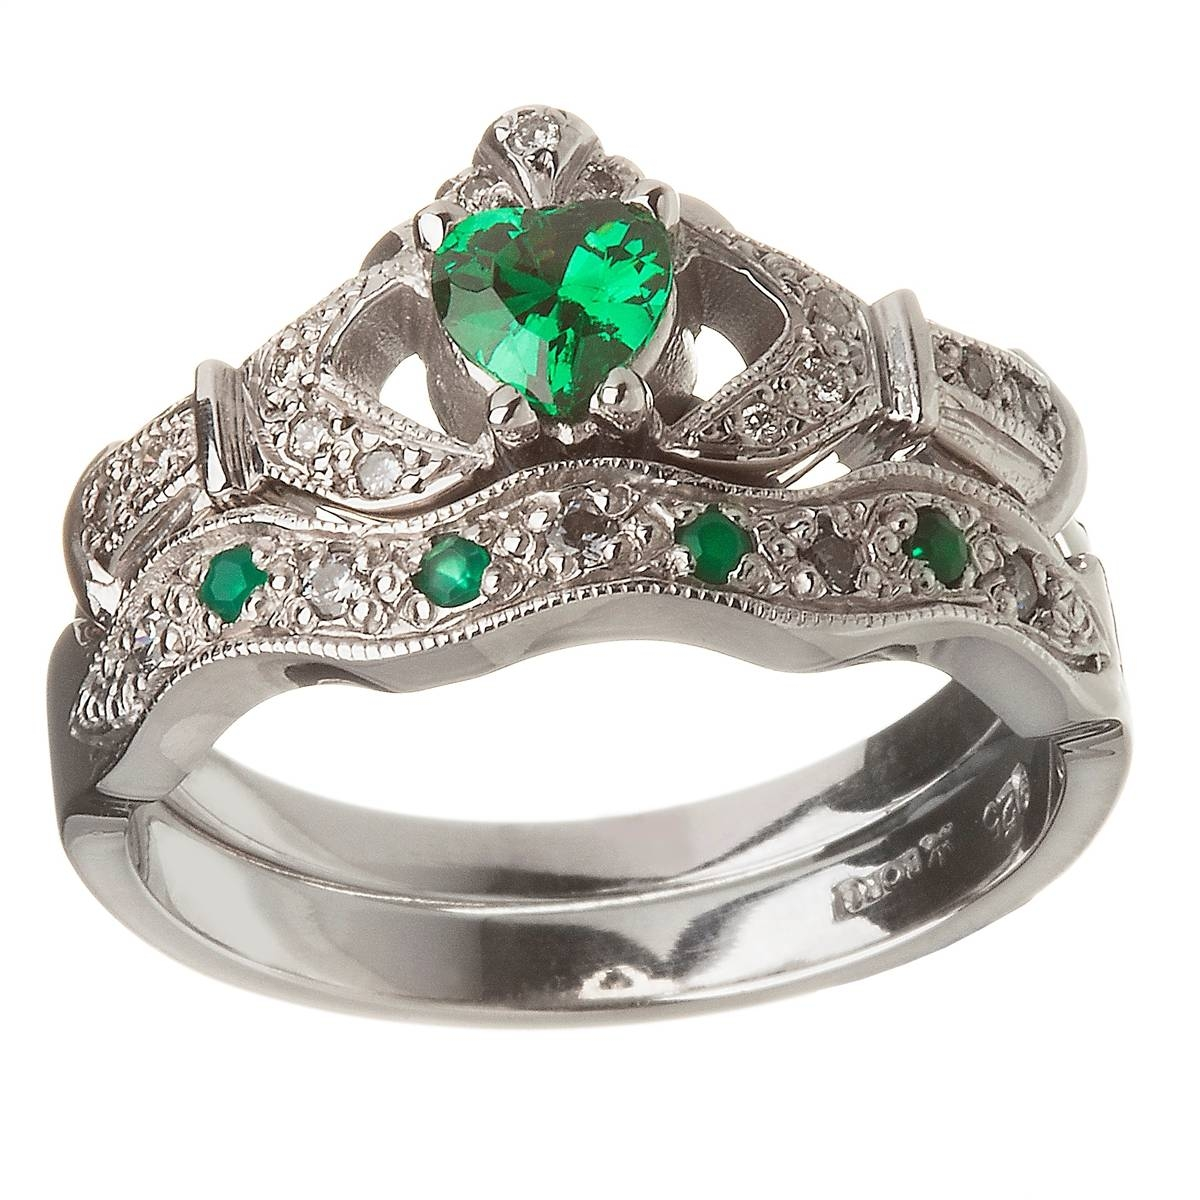 14K White Gold Emerald Set Heart Claddagh Ring & Wedding Ring Set Regarding Engagement Claddagh Rings (View 1 of 15)